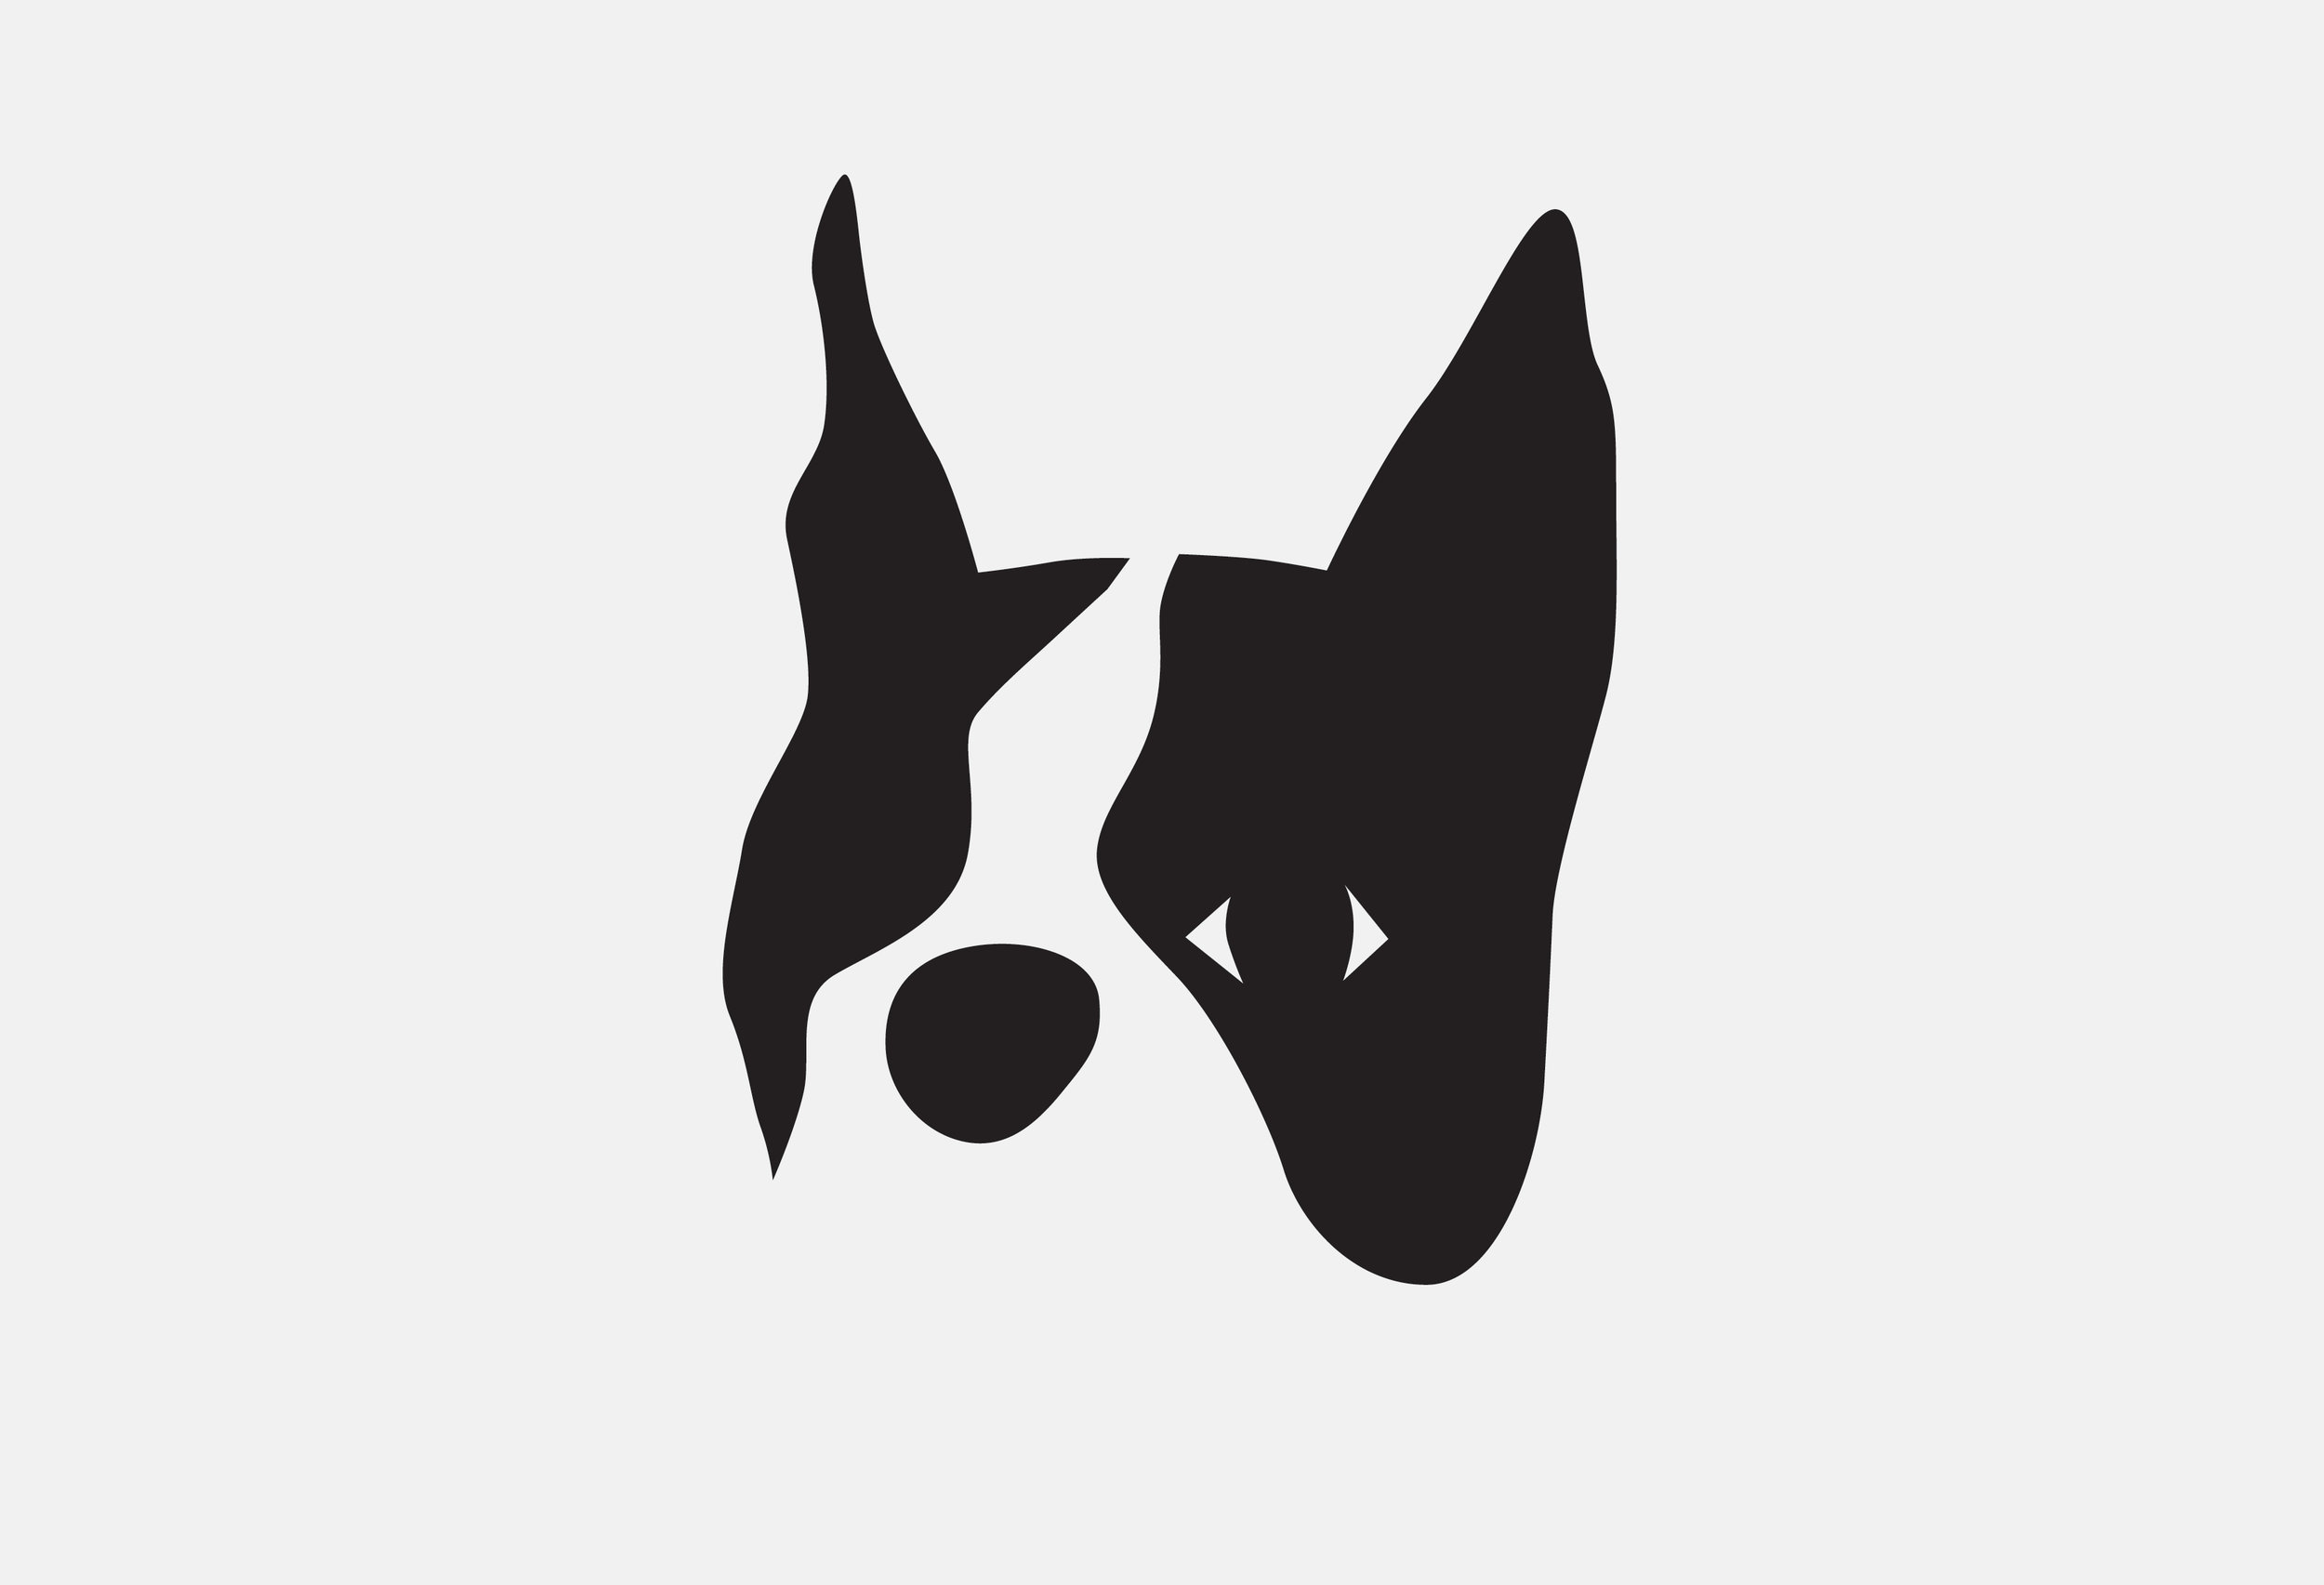 Mascot Images of Project dog6.jpg